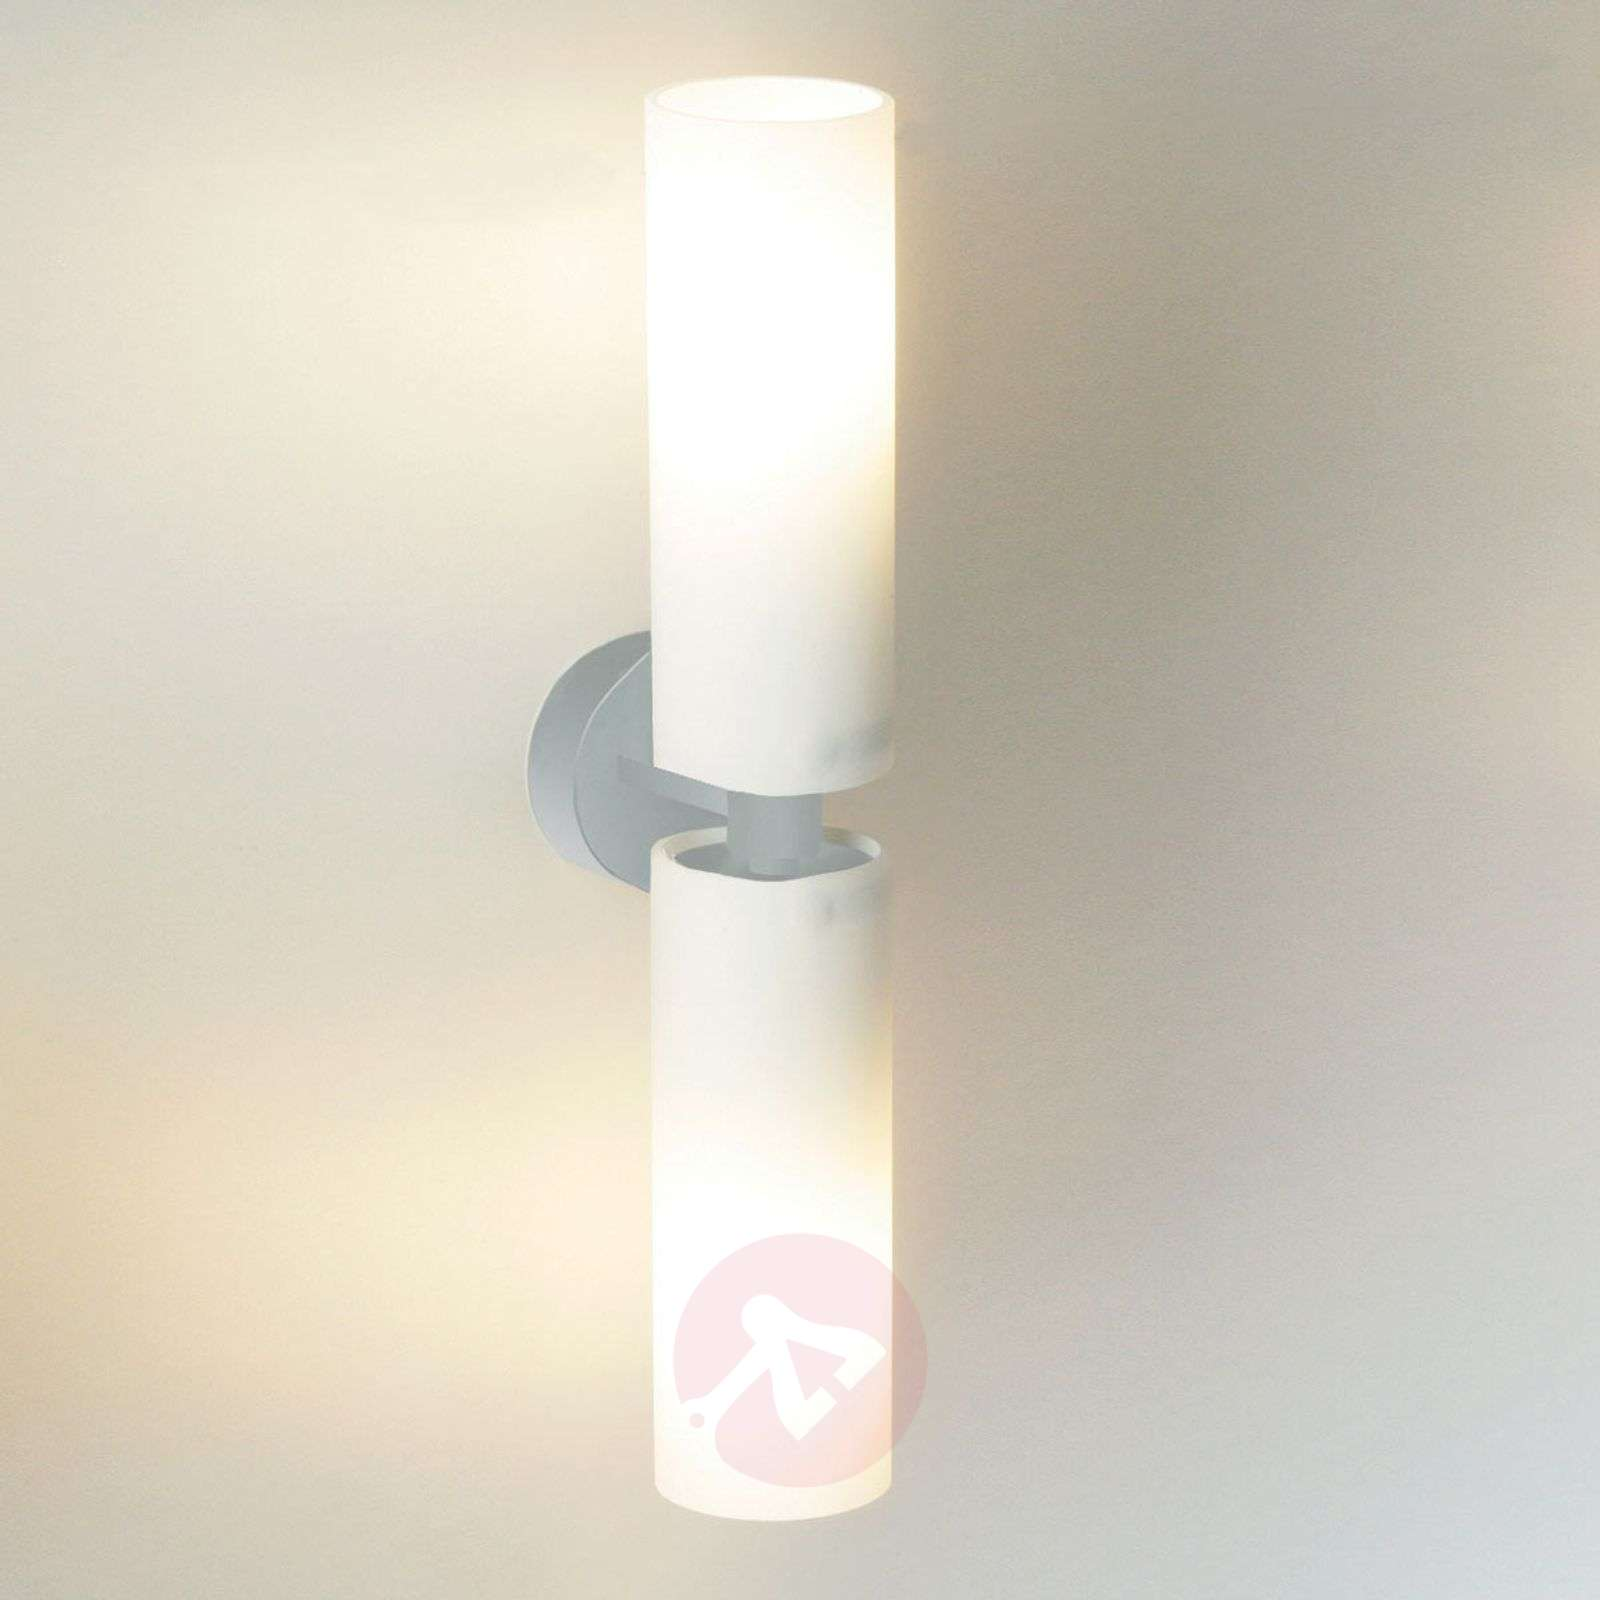 Tube Twin Double Wall Light In Frosted Glass Lights Co Uk